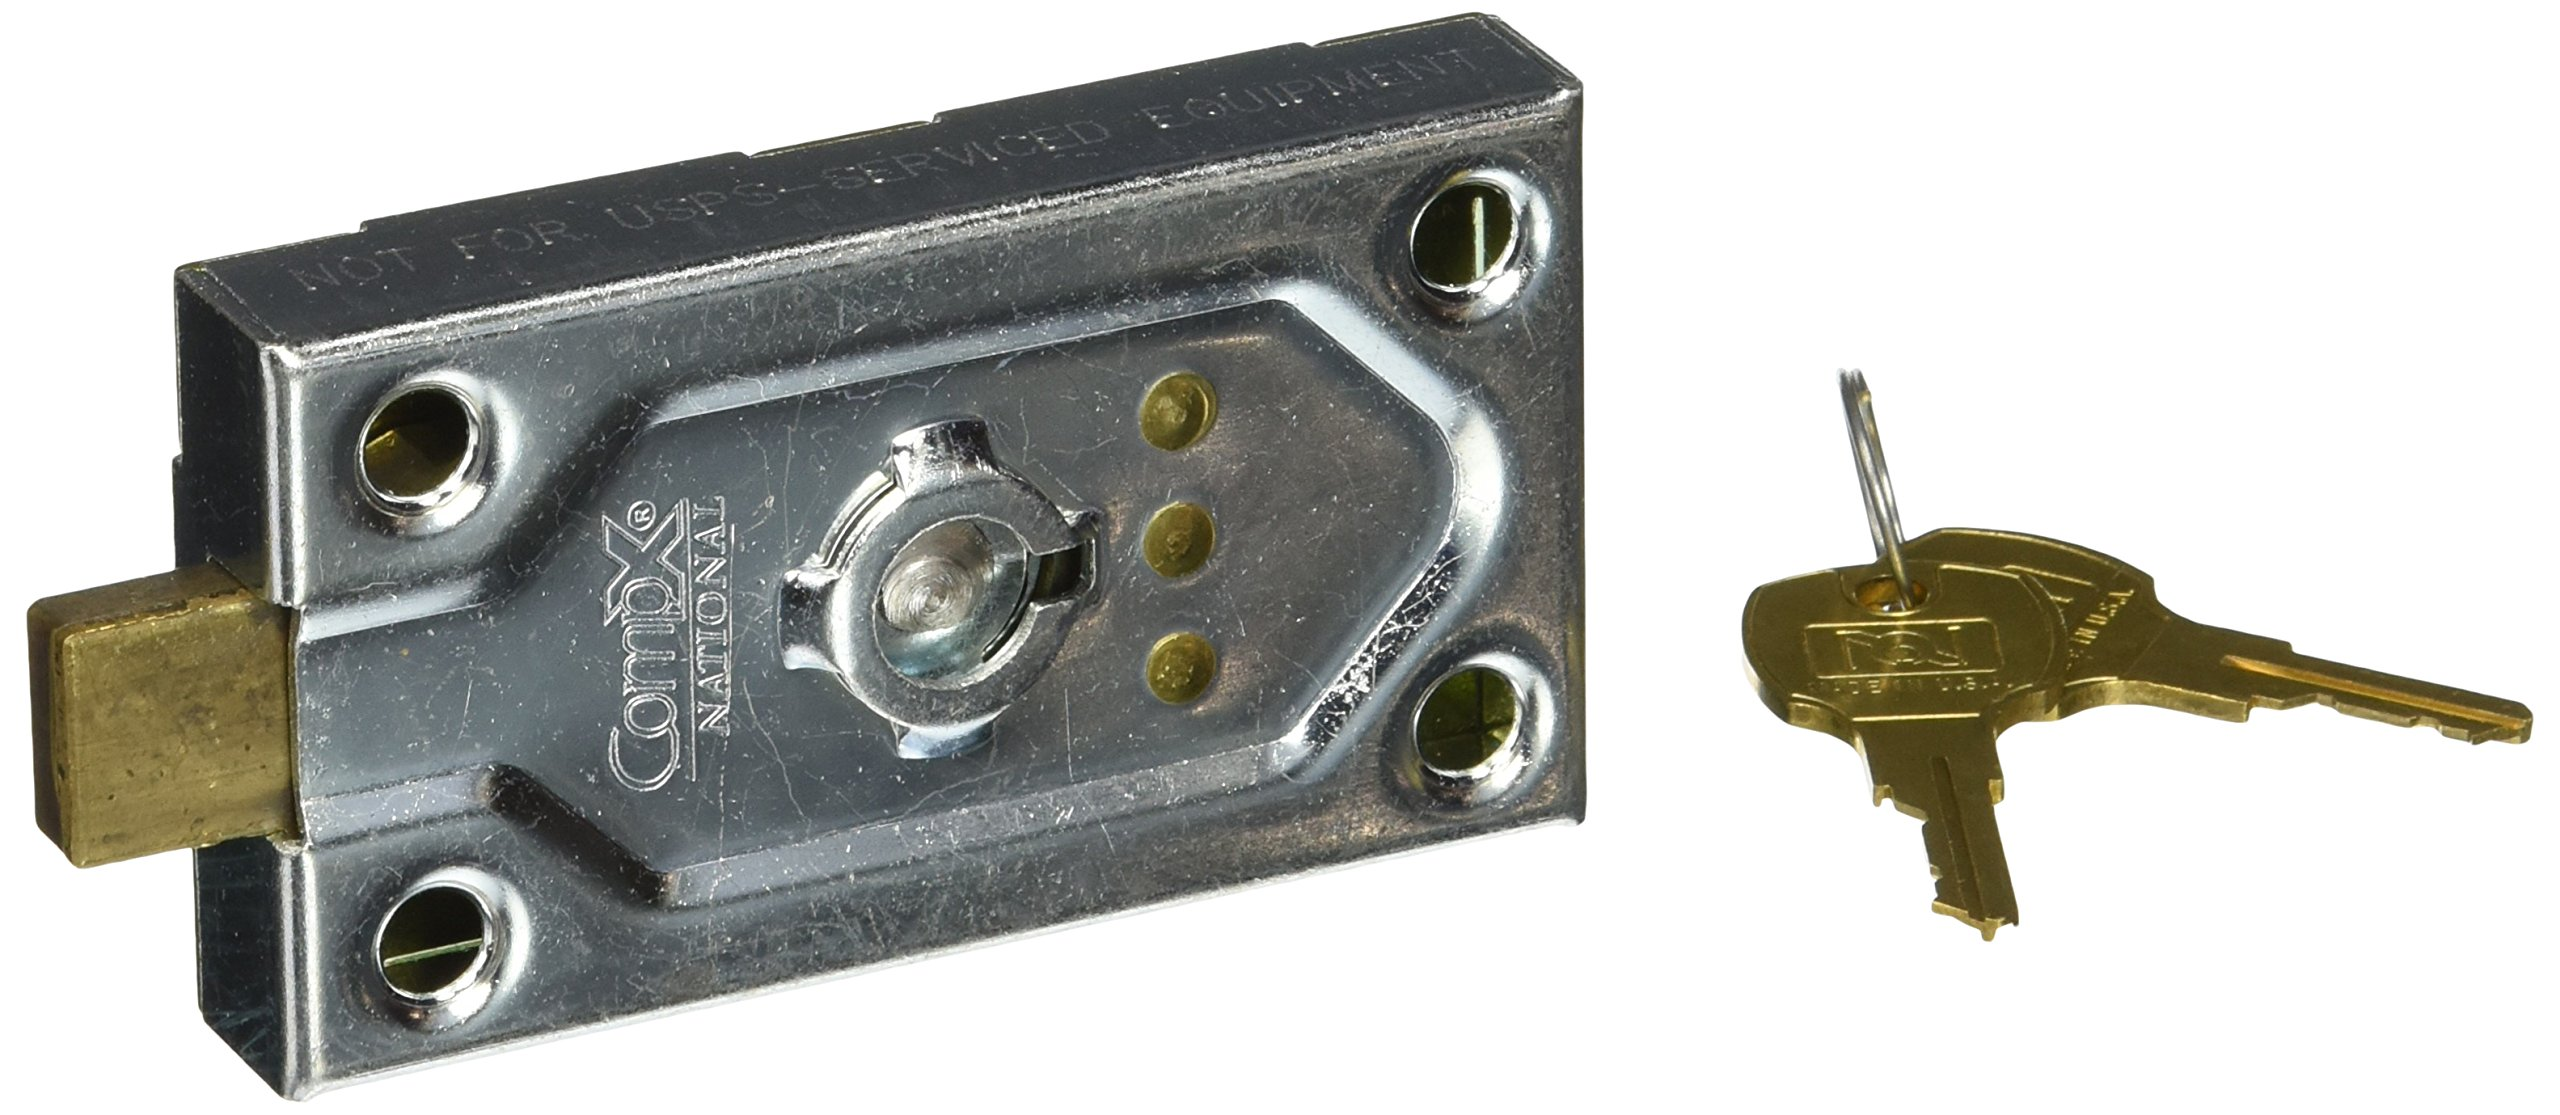 Salsbury Industries 1095 Replacement Commercial Lock for Key Keeper with 2 Keys